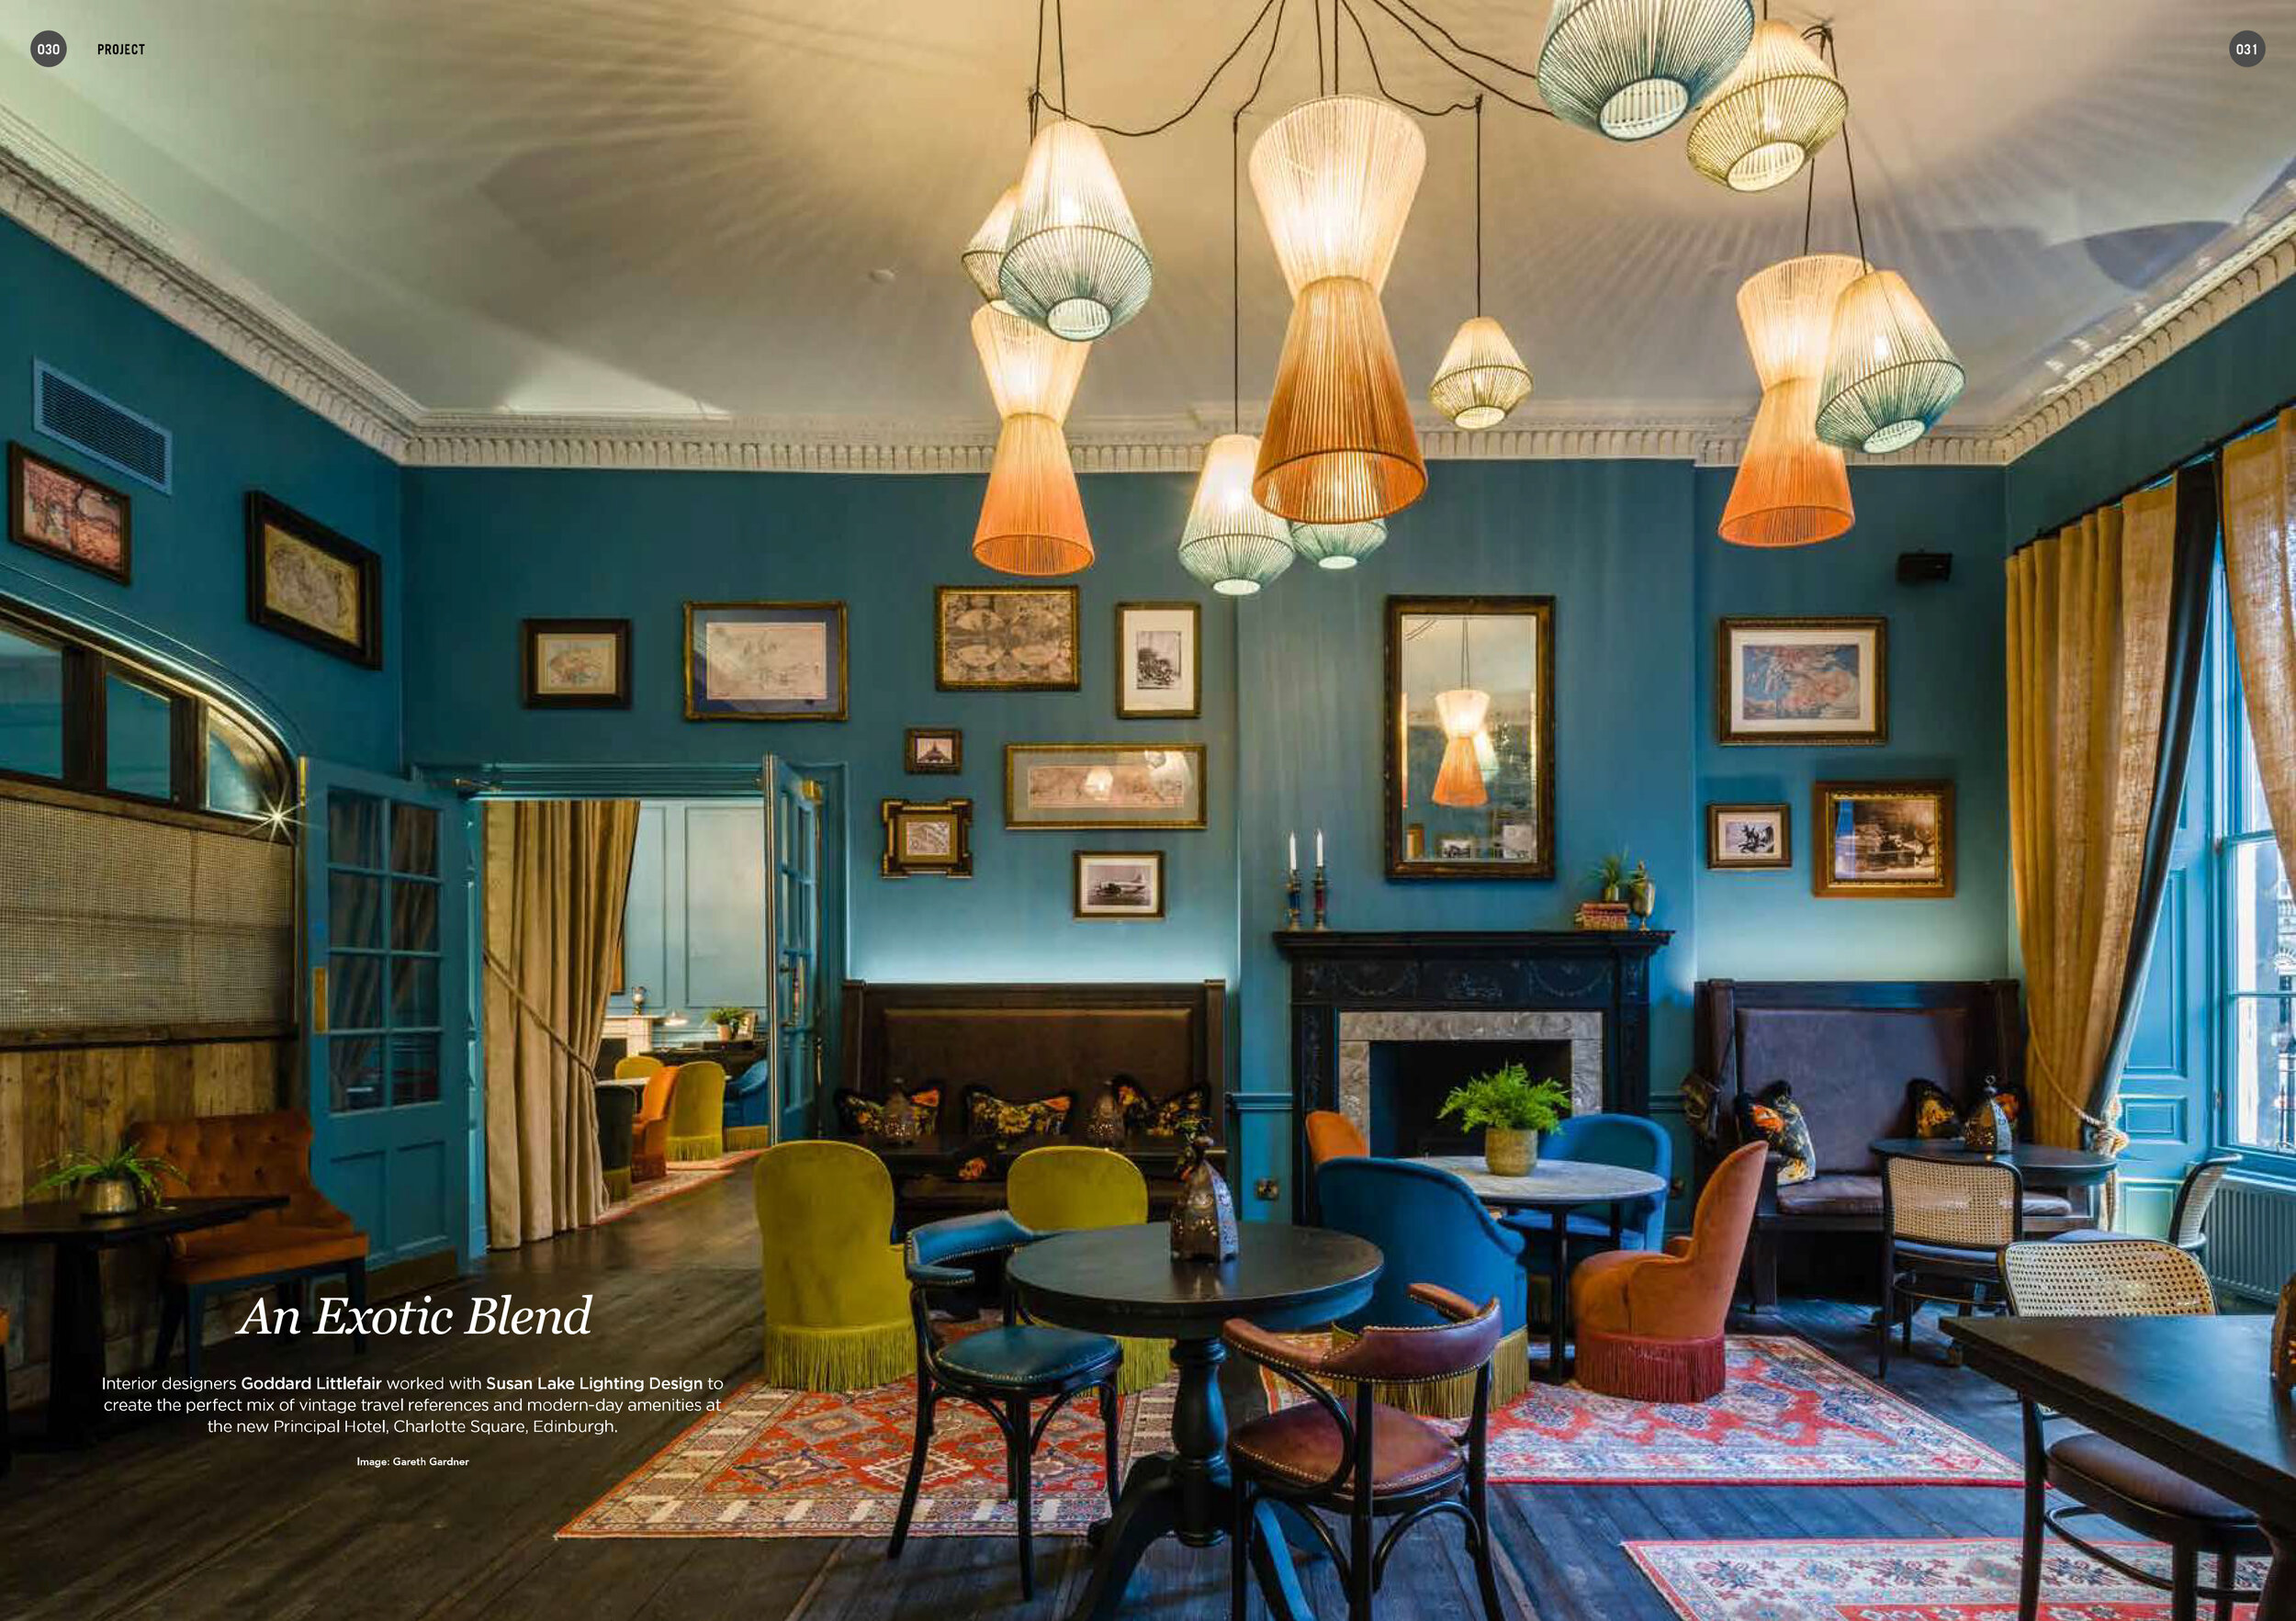 DARC MAGAZINE #25 MARCH/APRIL '18THE PRINCIPAL EDINBURGH, CHARLOTTE SQUARE -